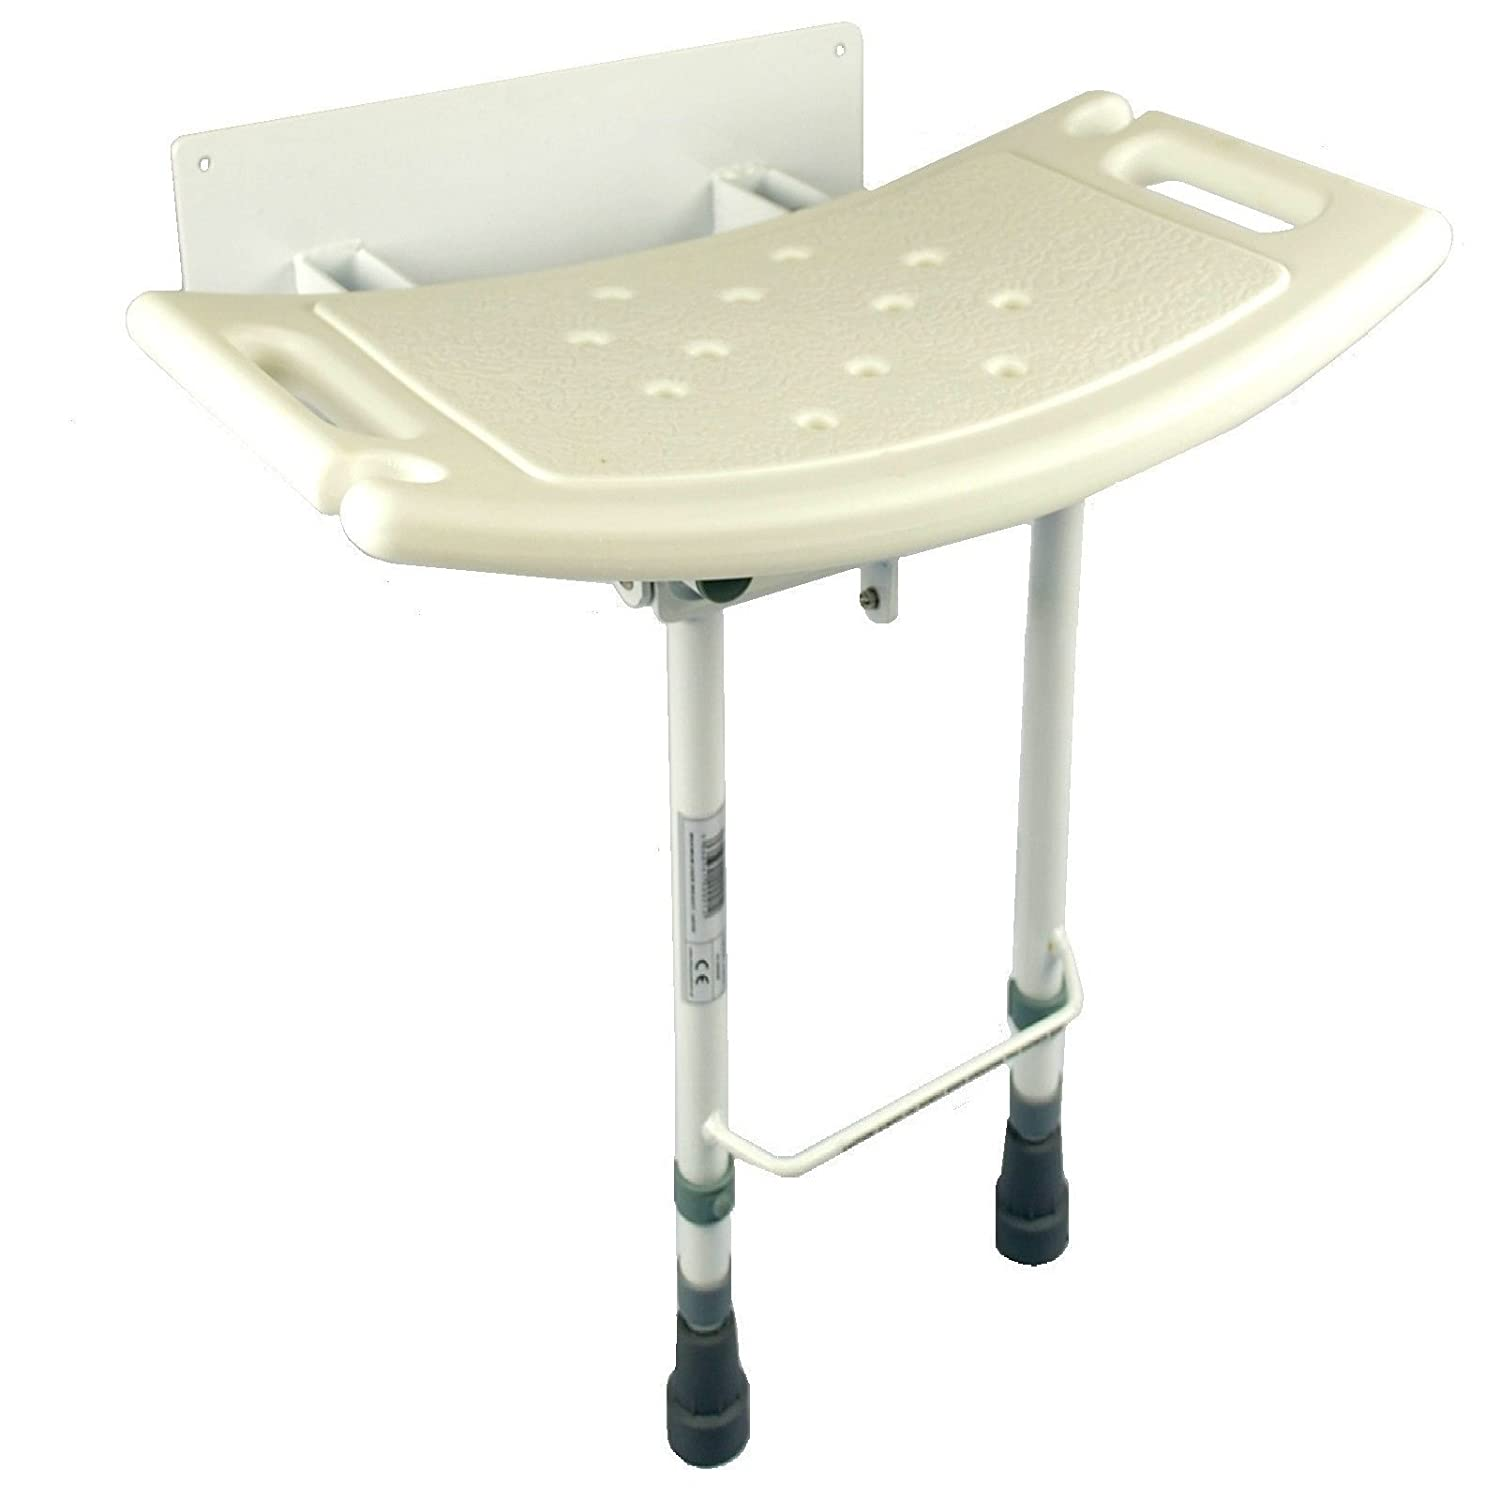 Folding Wall Mounted Shower Seat with Adjustable Legs and shower